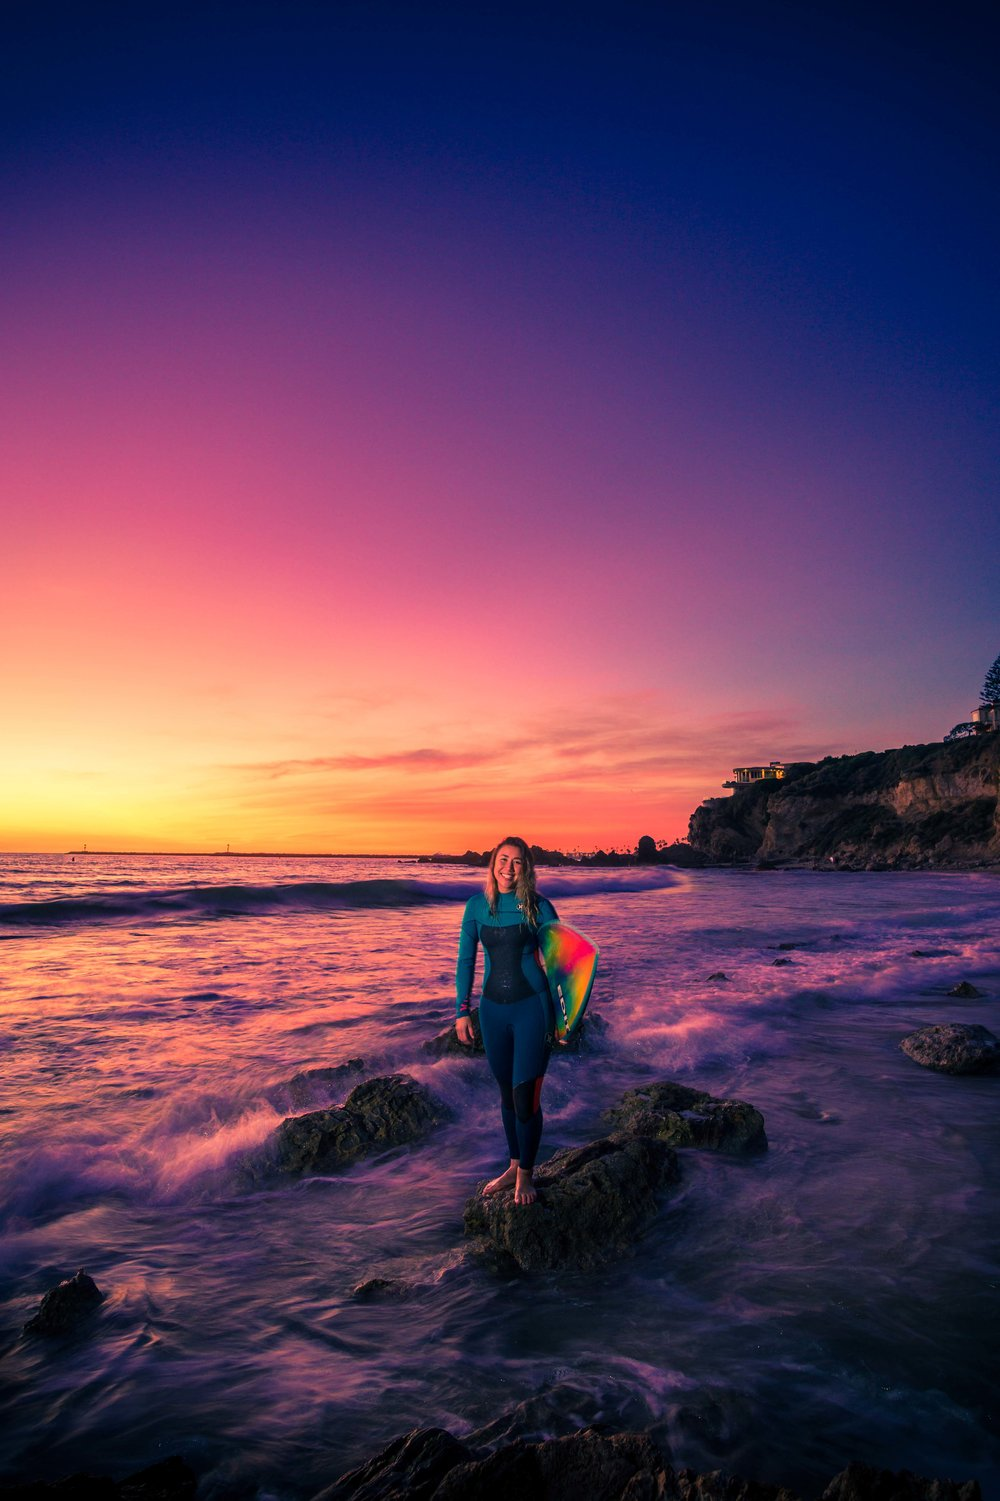 A portrait of a surfer girl at little corona beach with her standing on the tidepool rocks with the waves breaking during a beautiful purple sunset